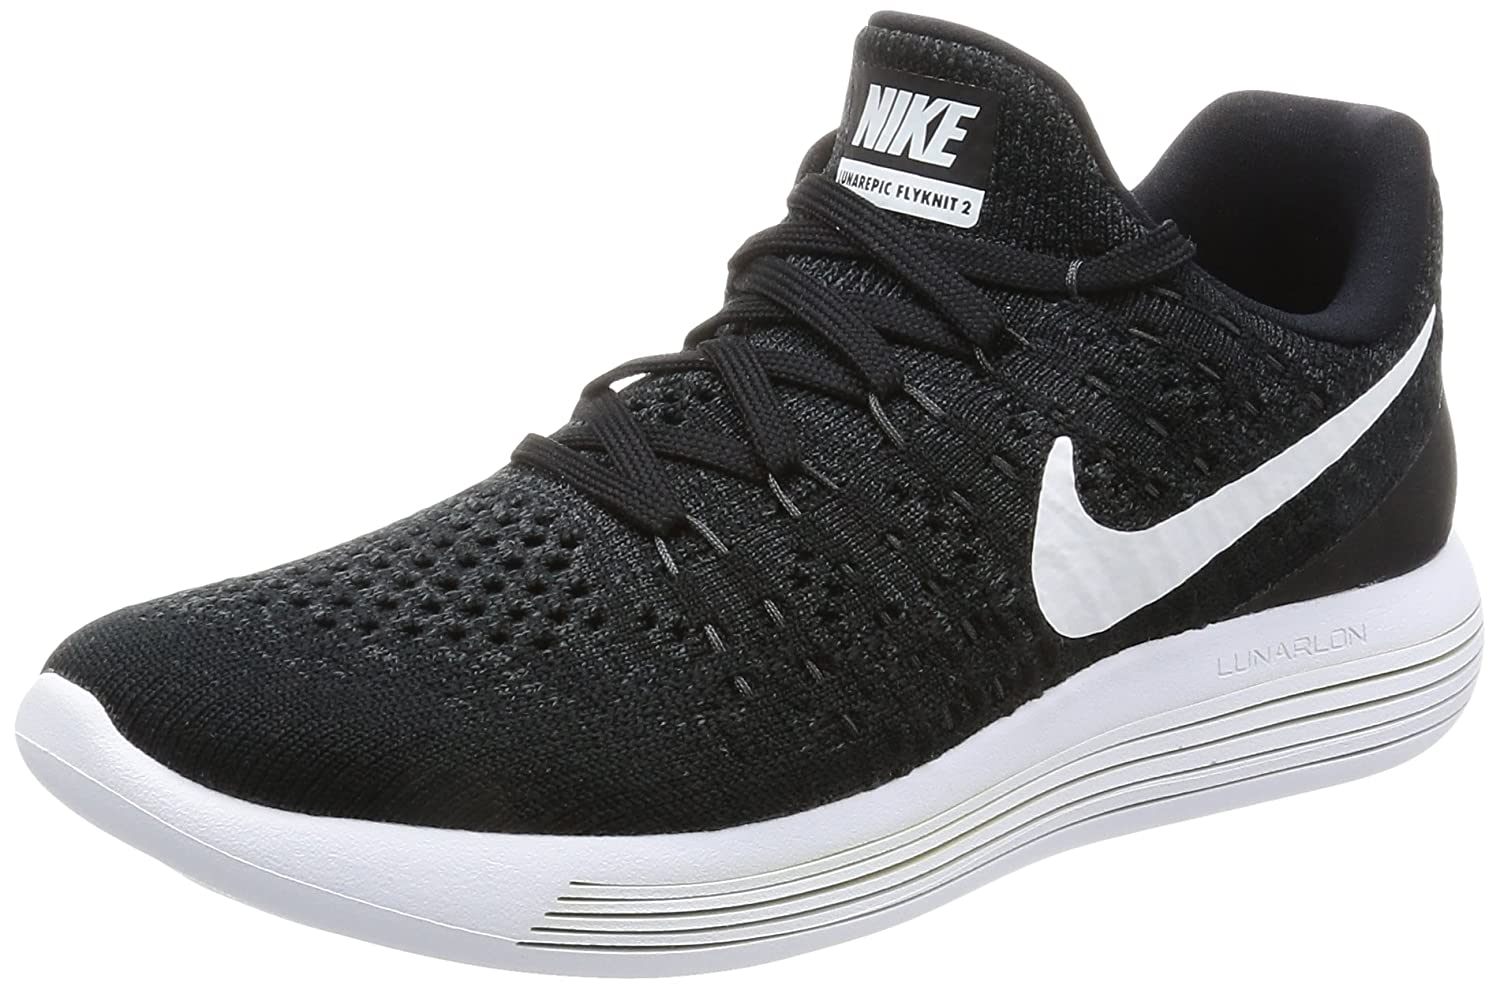 NIKE Women's Lunarepic Low Flyknit 2 Running Shoe B01MUJ15CX 10 M US|Black/White/Anthracite